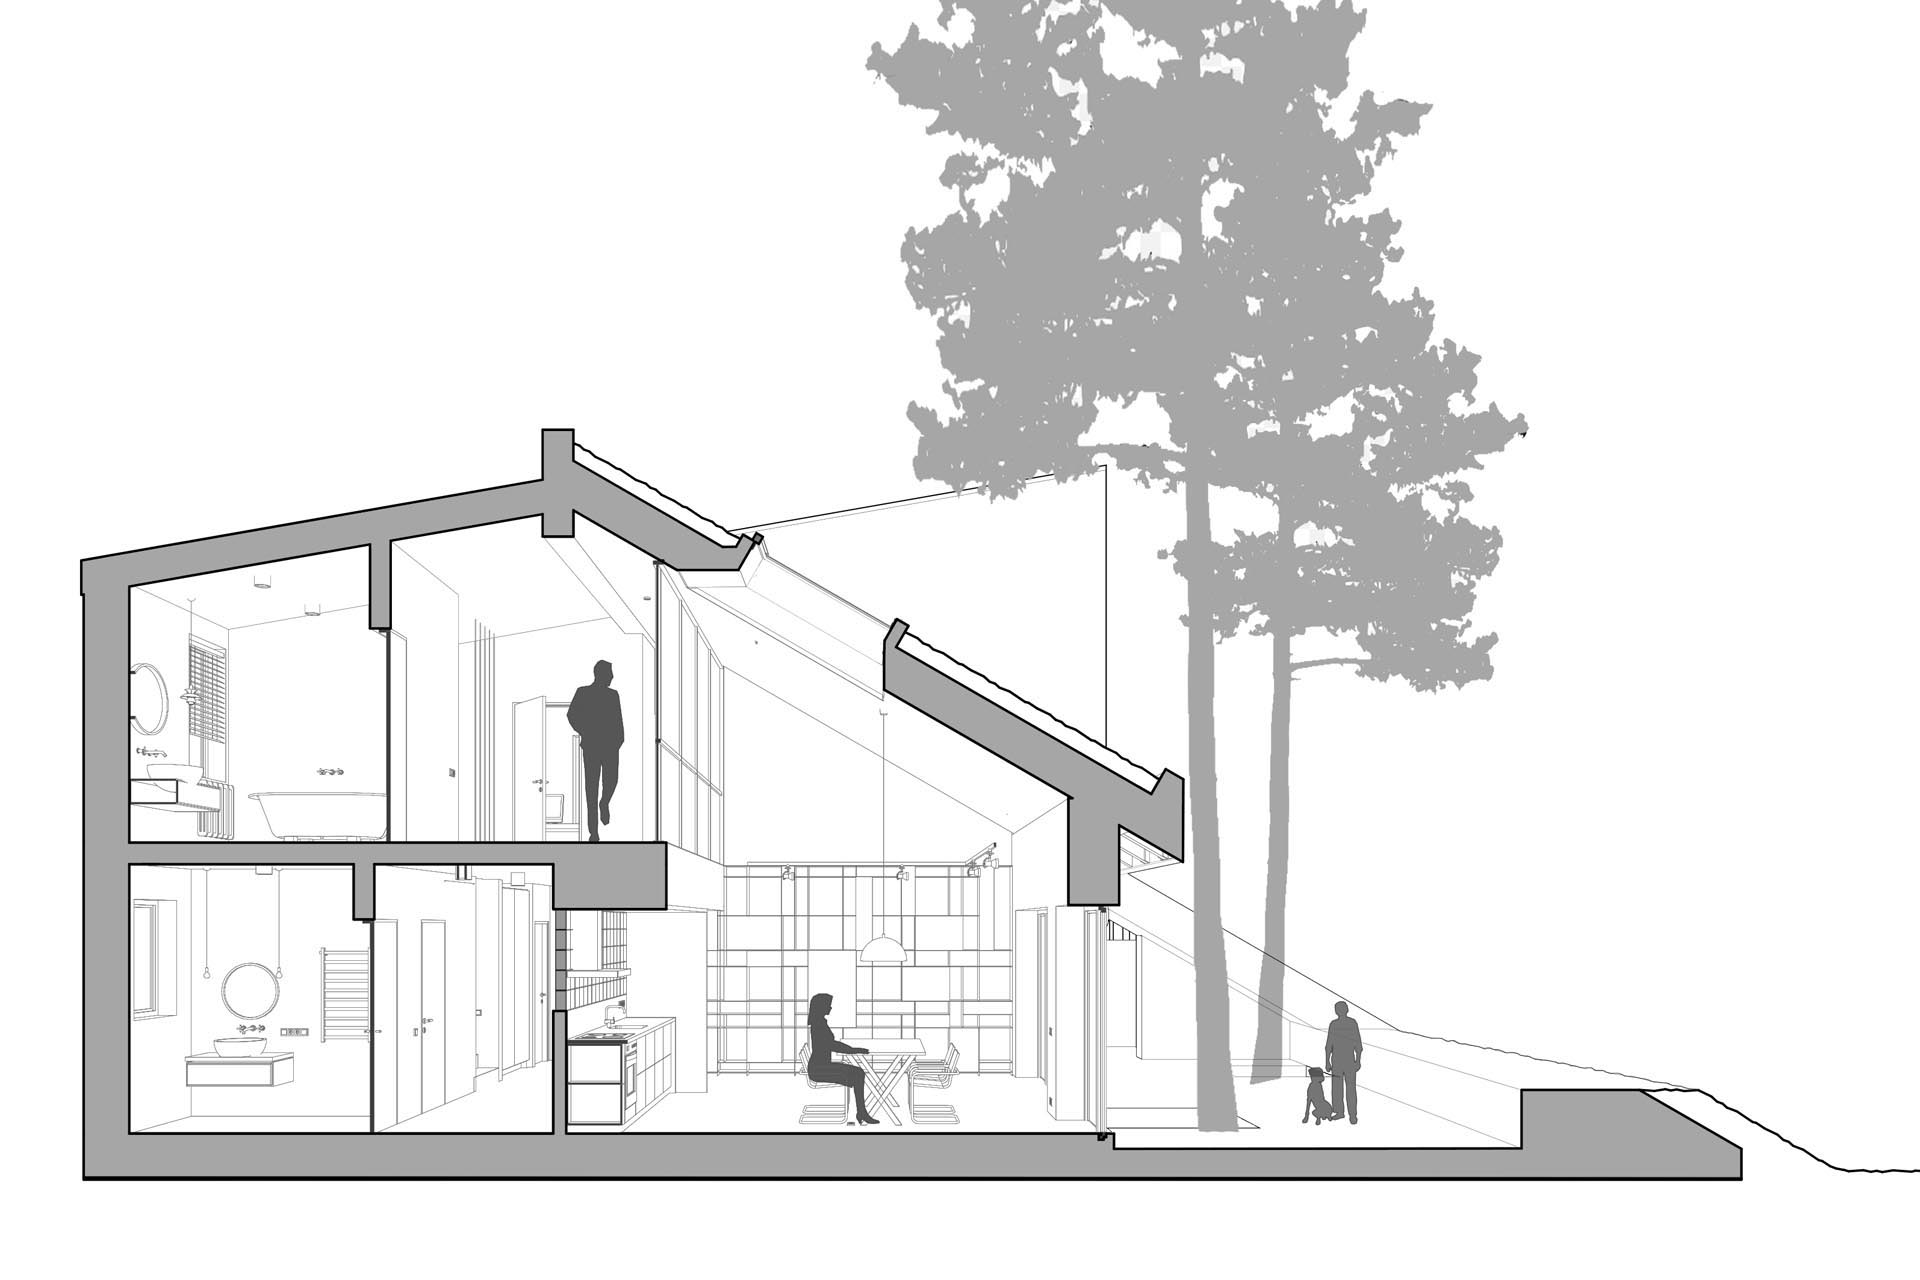 The section of a modern house with a sloped green roof.